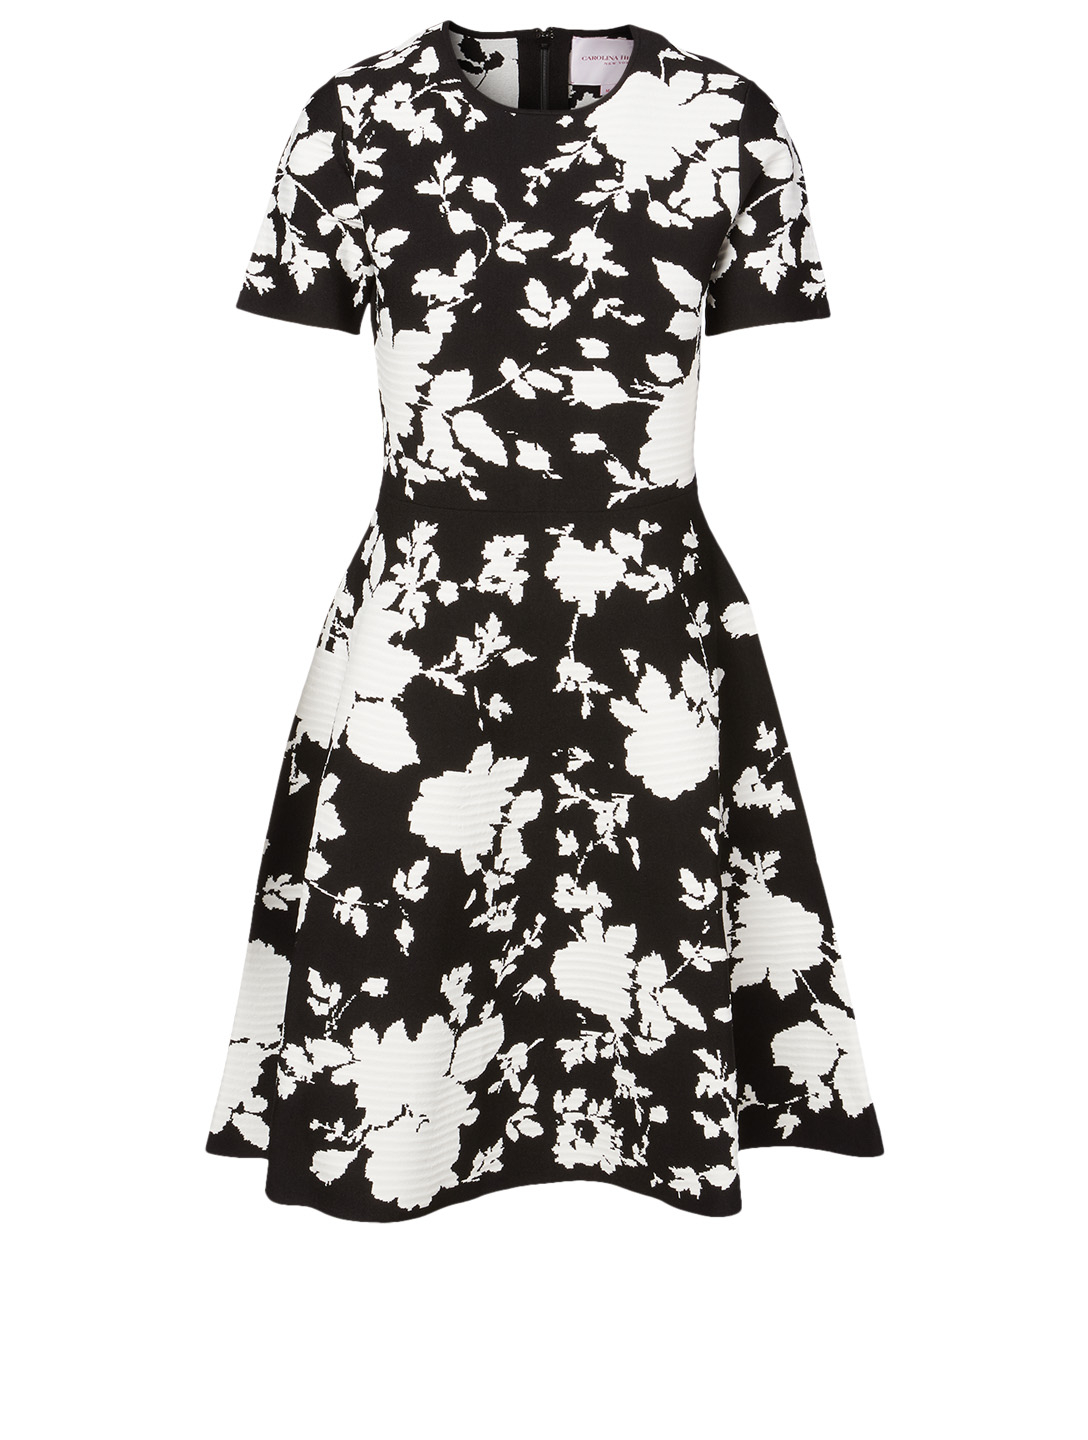 CAROLINA HERRERA Jacquard Printed Dress Women's Black